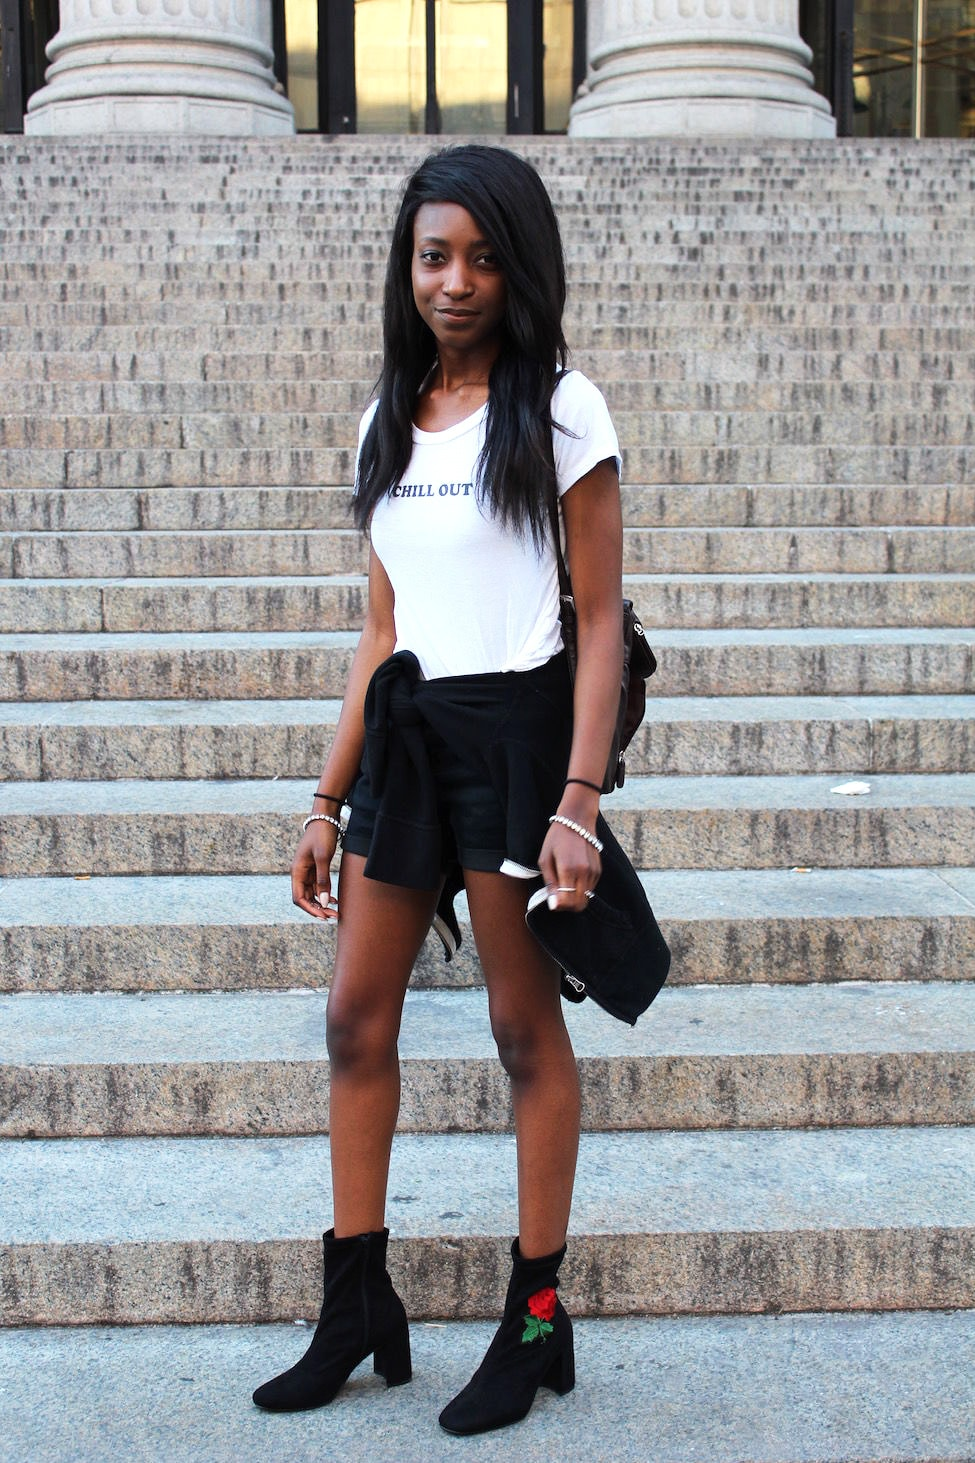 Outfits for College: Street style example. College student from University of Missouri wears a Chill Out graphic tee shirt, rose embroidered booties, black shorts, and a black mini backpack